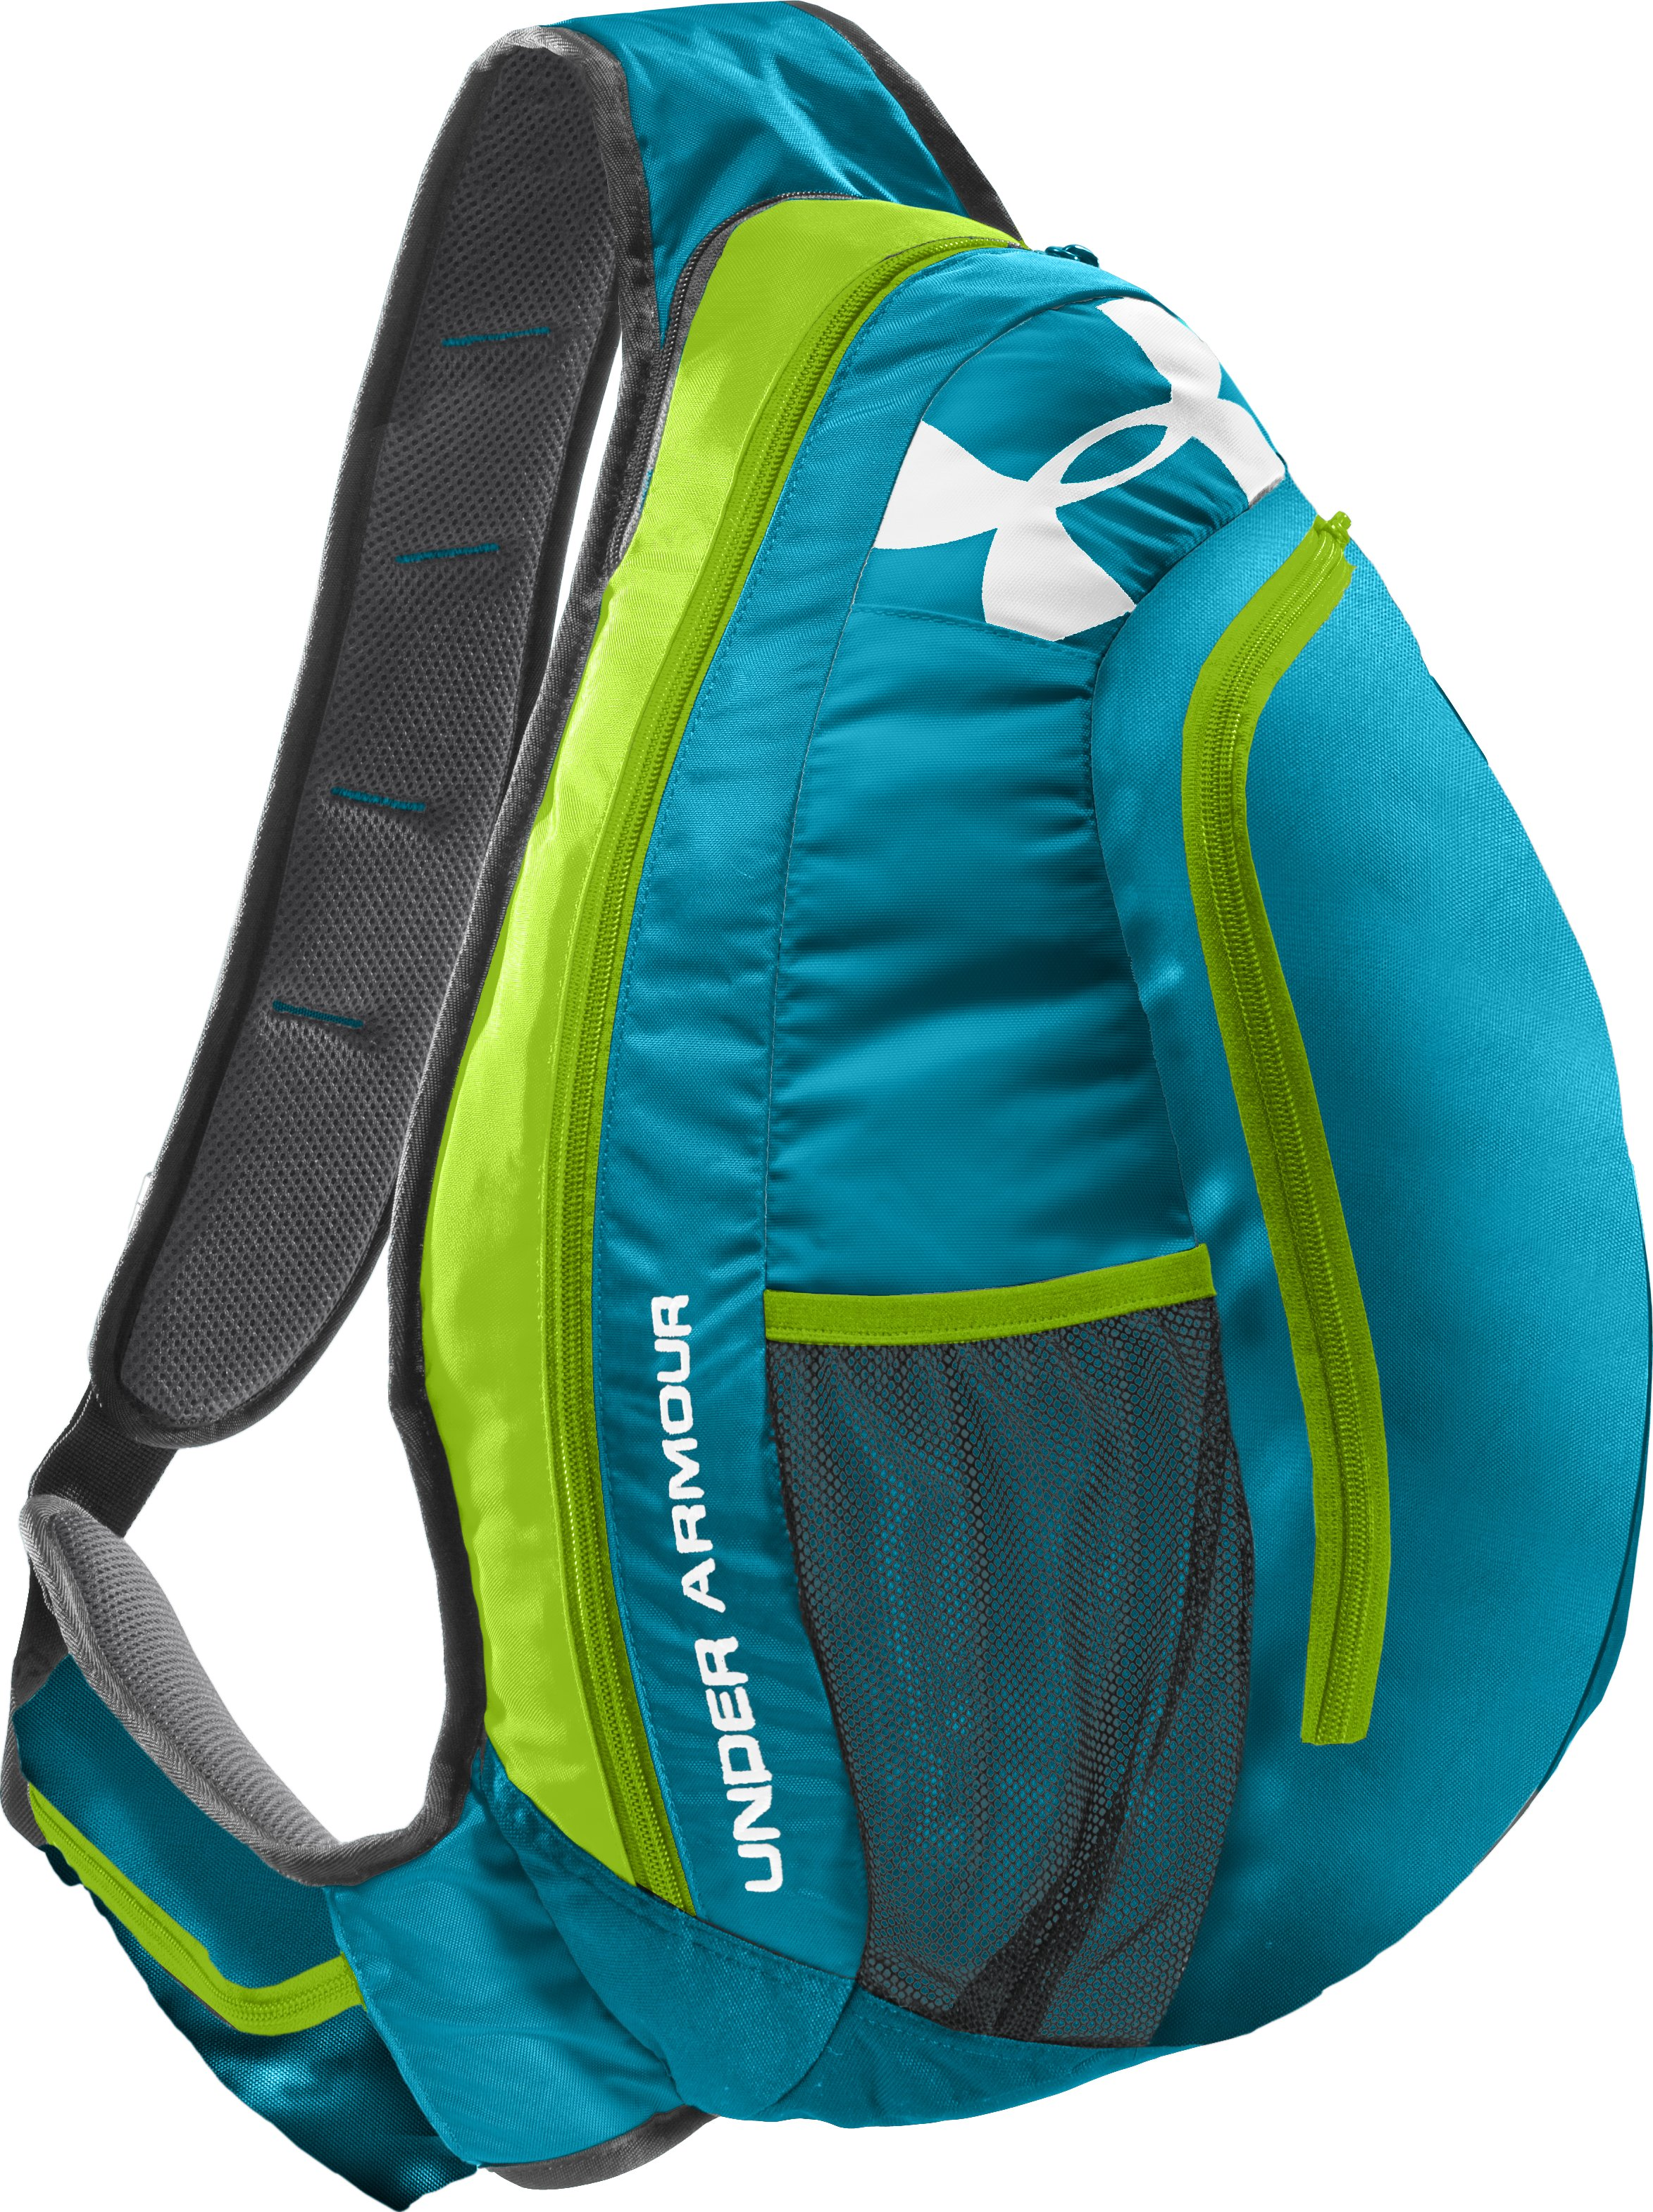 Khalon Sling Backpack, Break